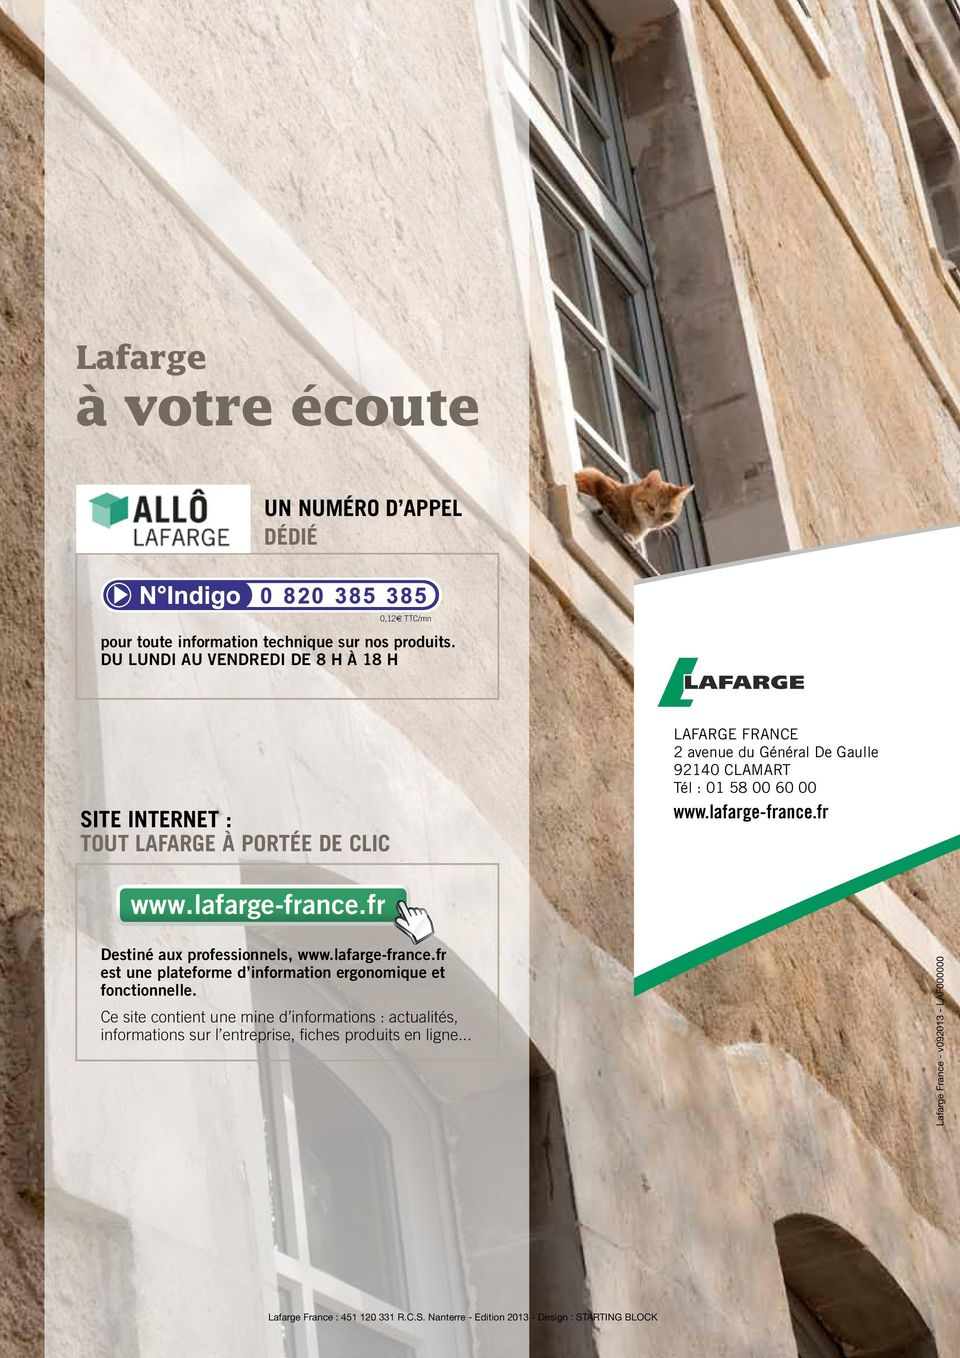 and Country Tel. (+00) (0)0 0000 0000 Tél Fax: : 01 (+00) 58 (0)0 000000 60 00 0000 www.lafarge-